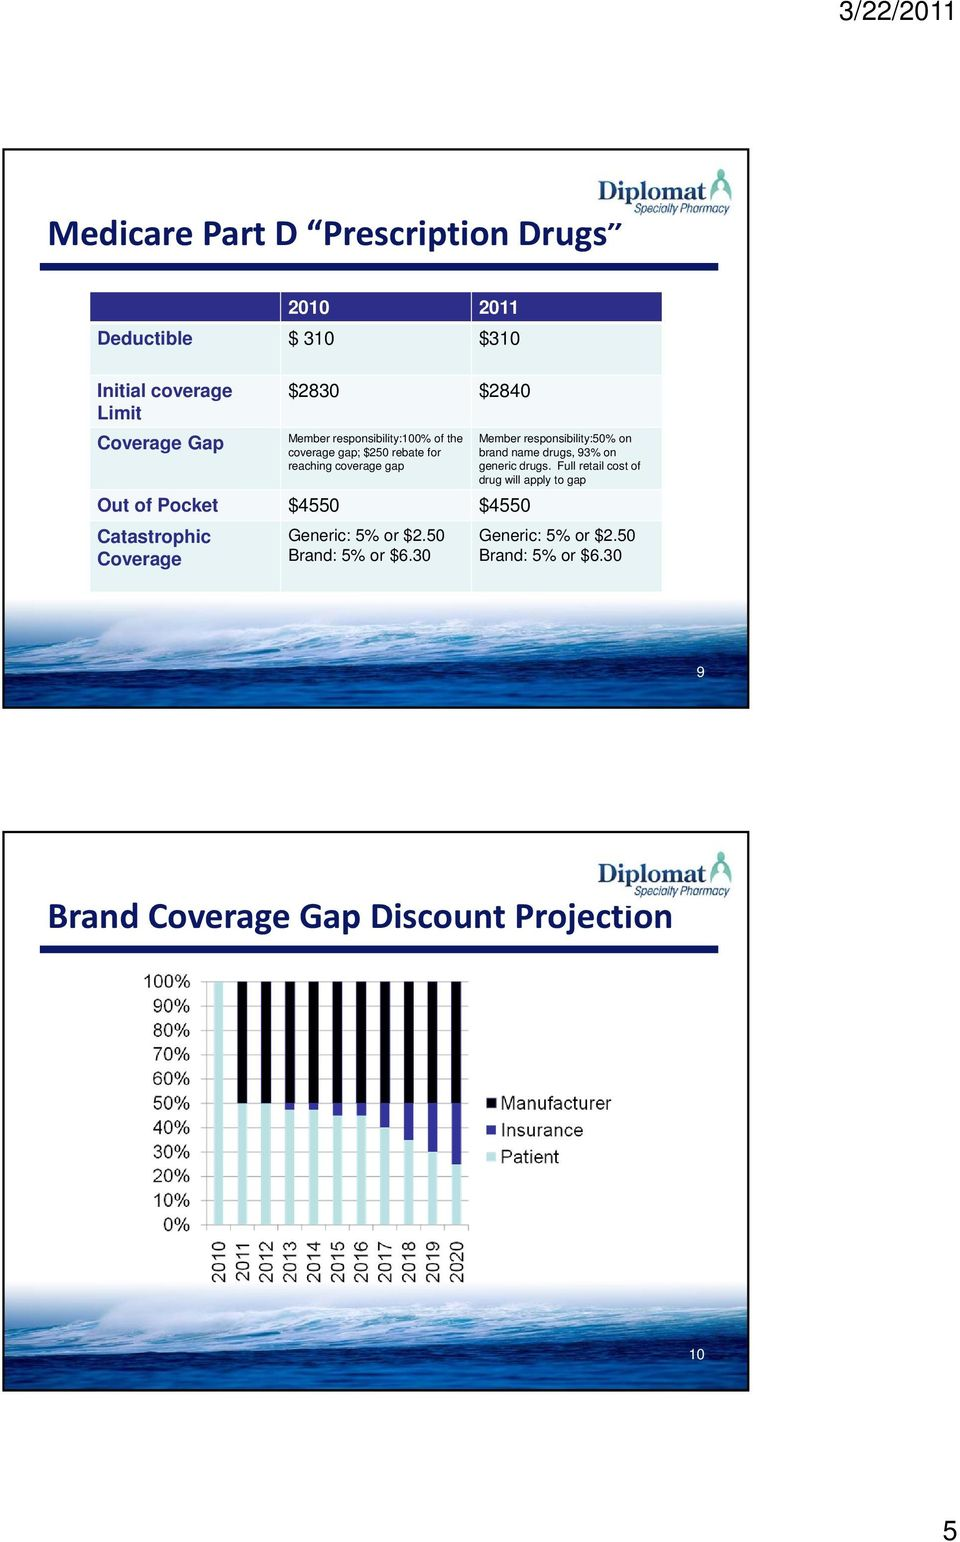 Coverage Generic: 5% or $2.50 Brand: 5% or $6.30 Member responsibility:50% on brand name drugs, 93% on generic drugs.